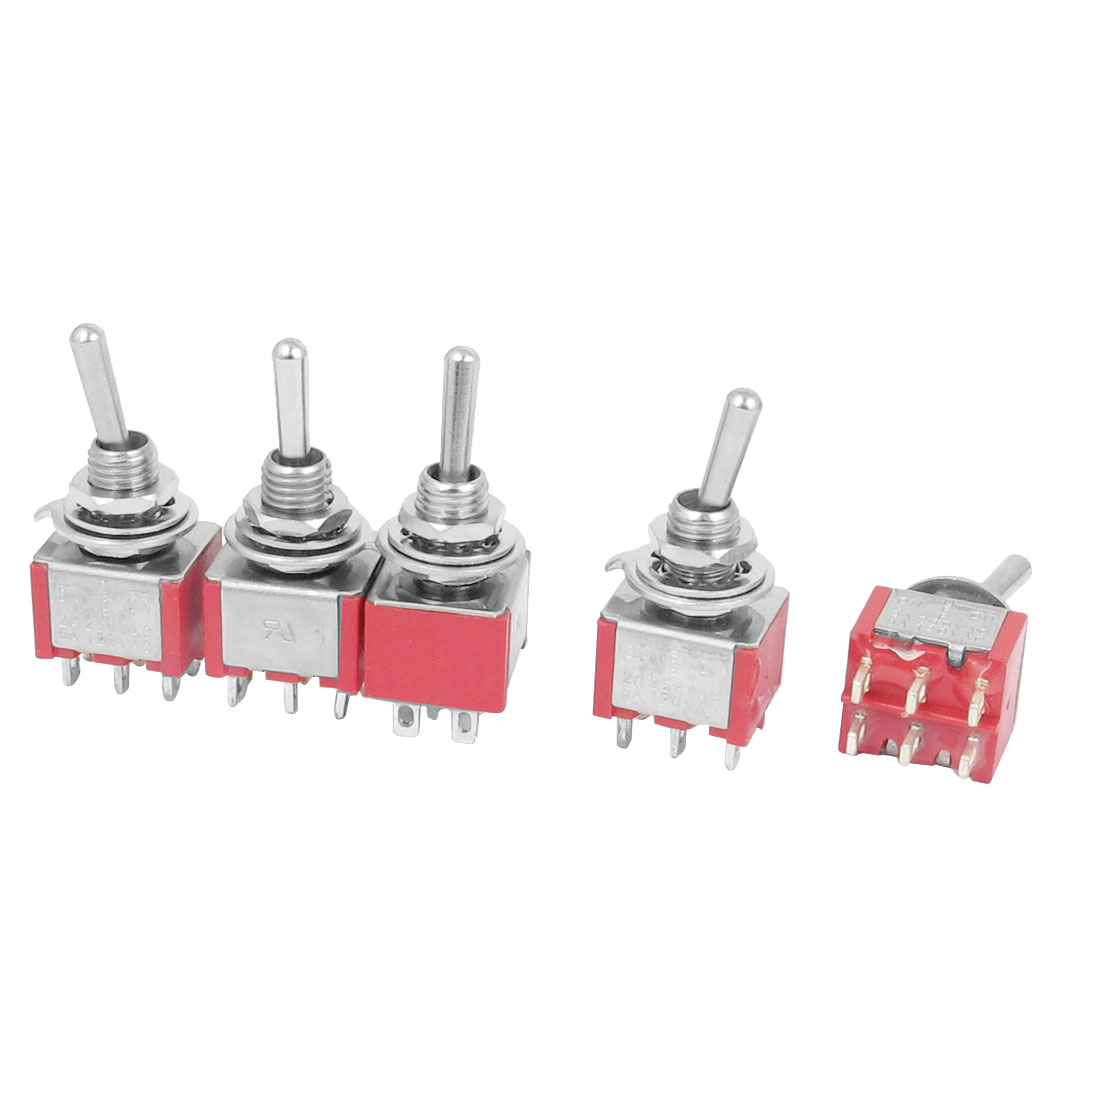 AC 250V 2A AC 120V 5A Road Car 6 Terminal Momentary Toggle Switch 5PCS